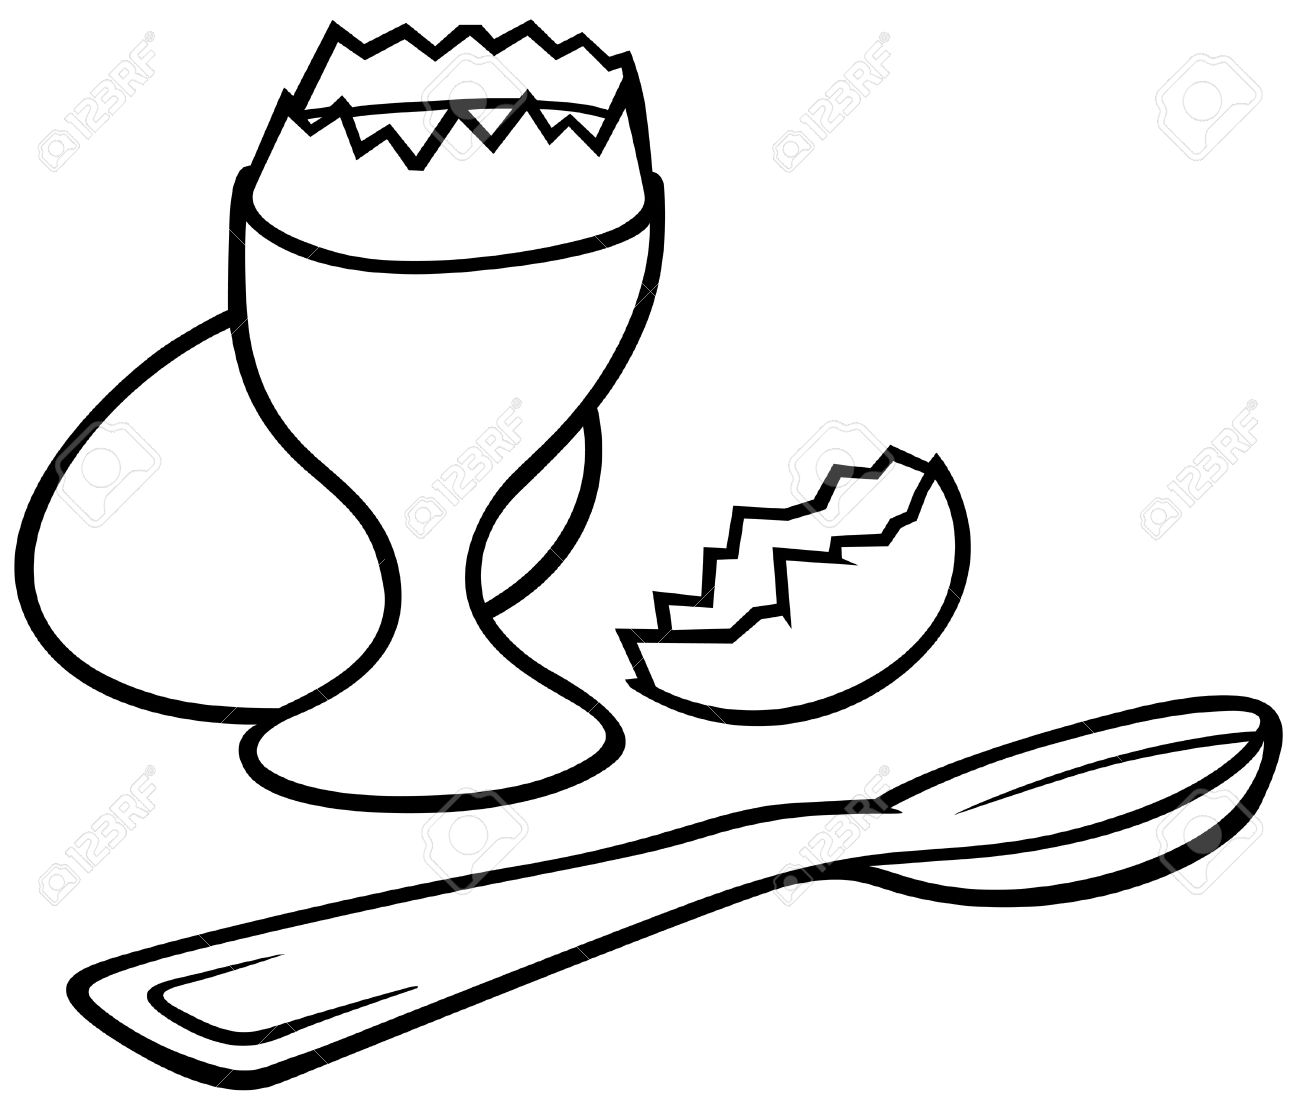 Eggcup - Black and White Cartoon illustration, Vector Stock Vector - 8756007